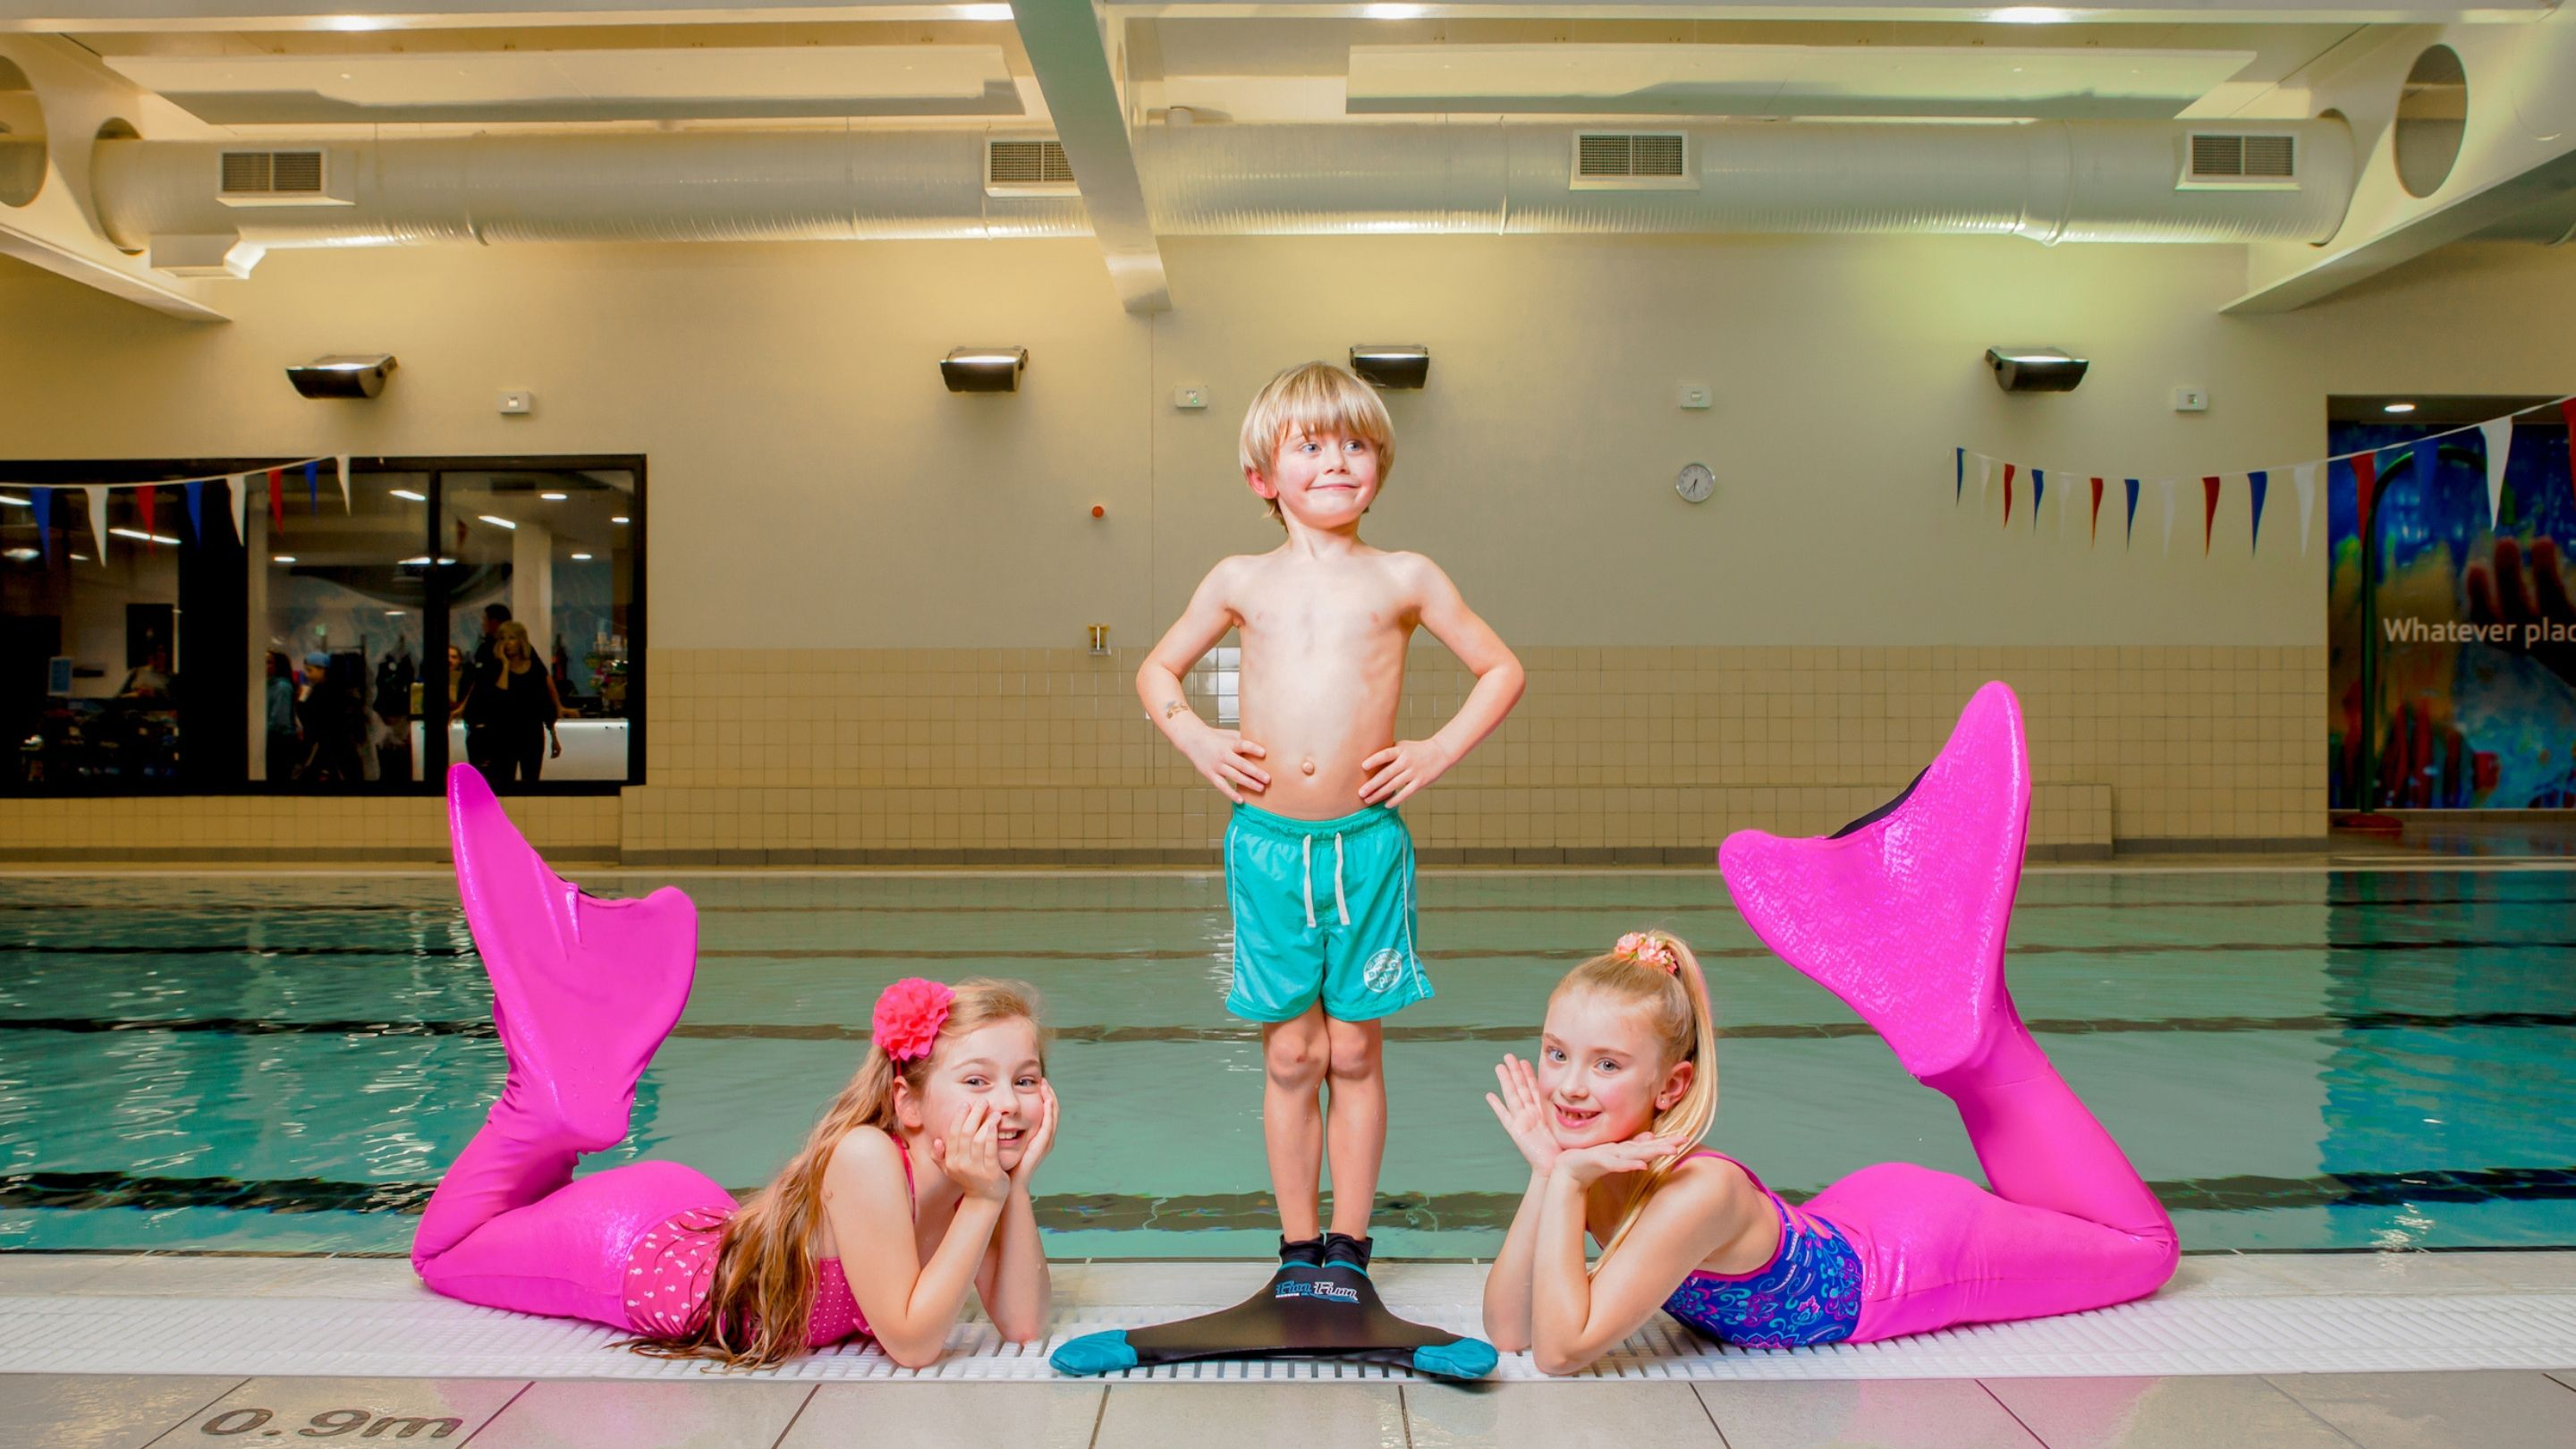 Institute of Swimming and Fin2Fit Collaborate to Deliver Children's Mono-Fin Mermaid and Shark Lessons